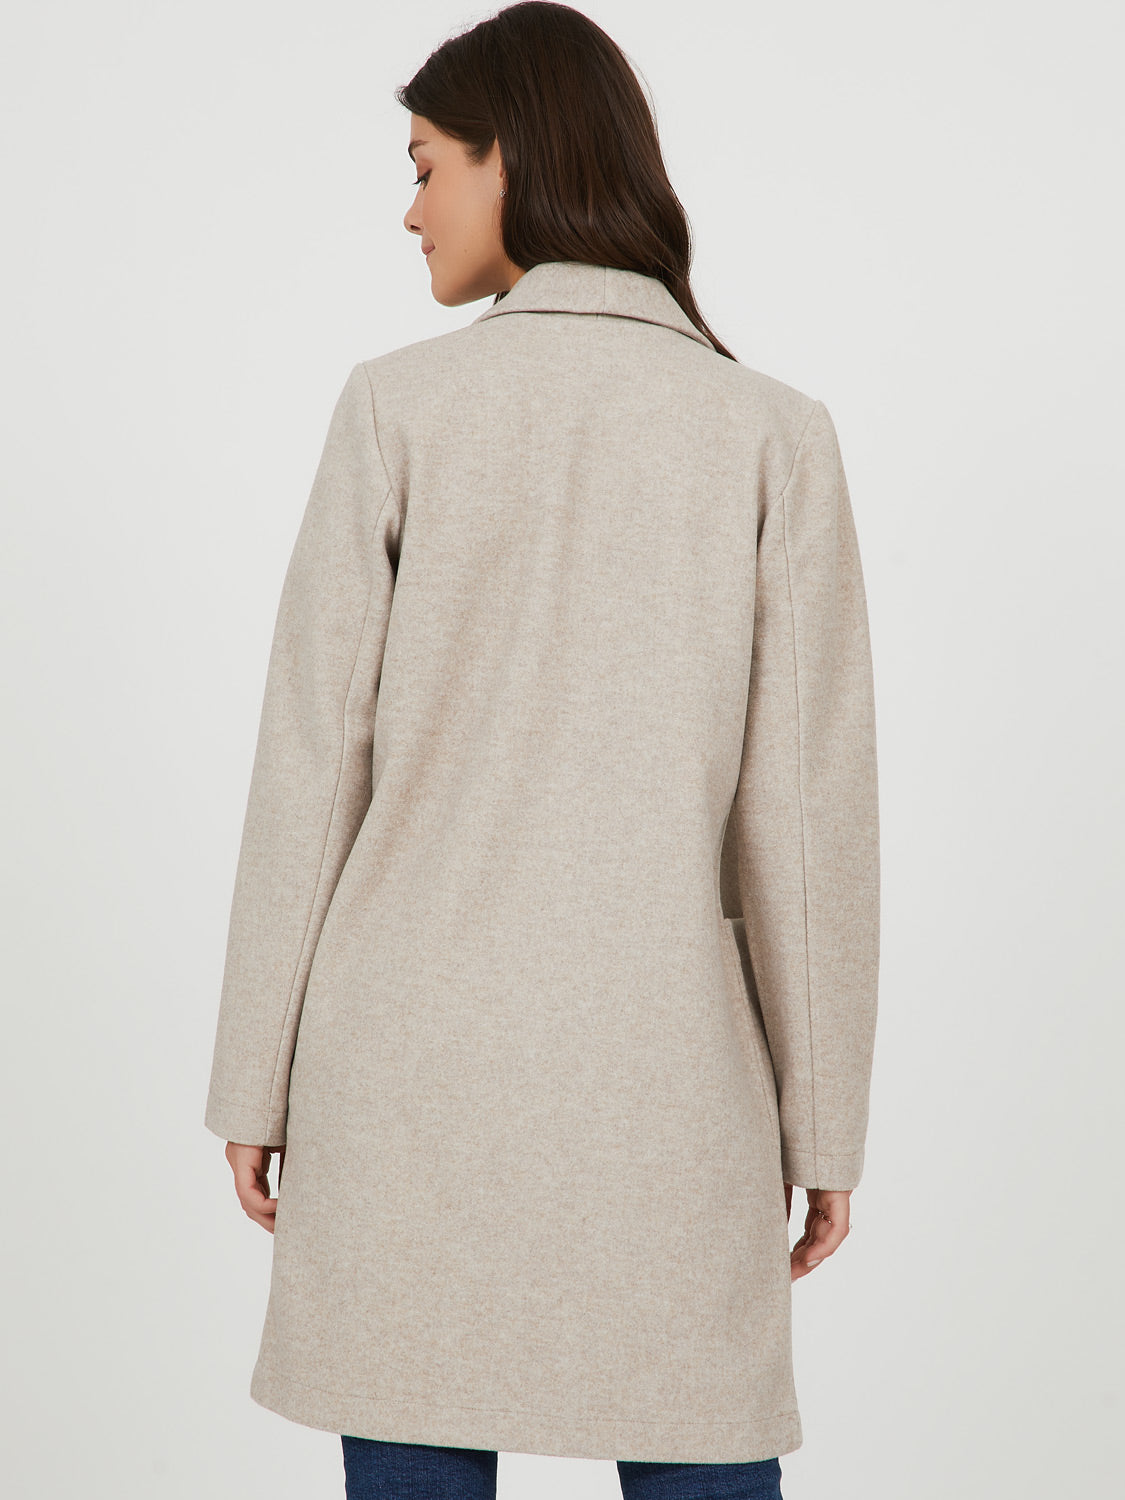 Fleece Shawl Collar Knit Jacket